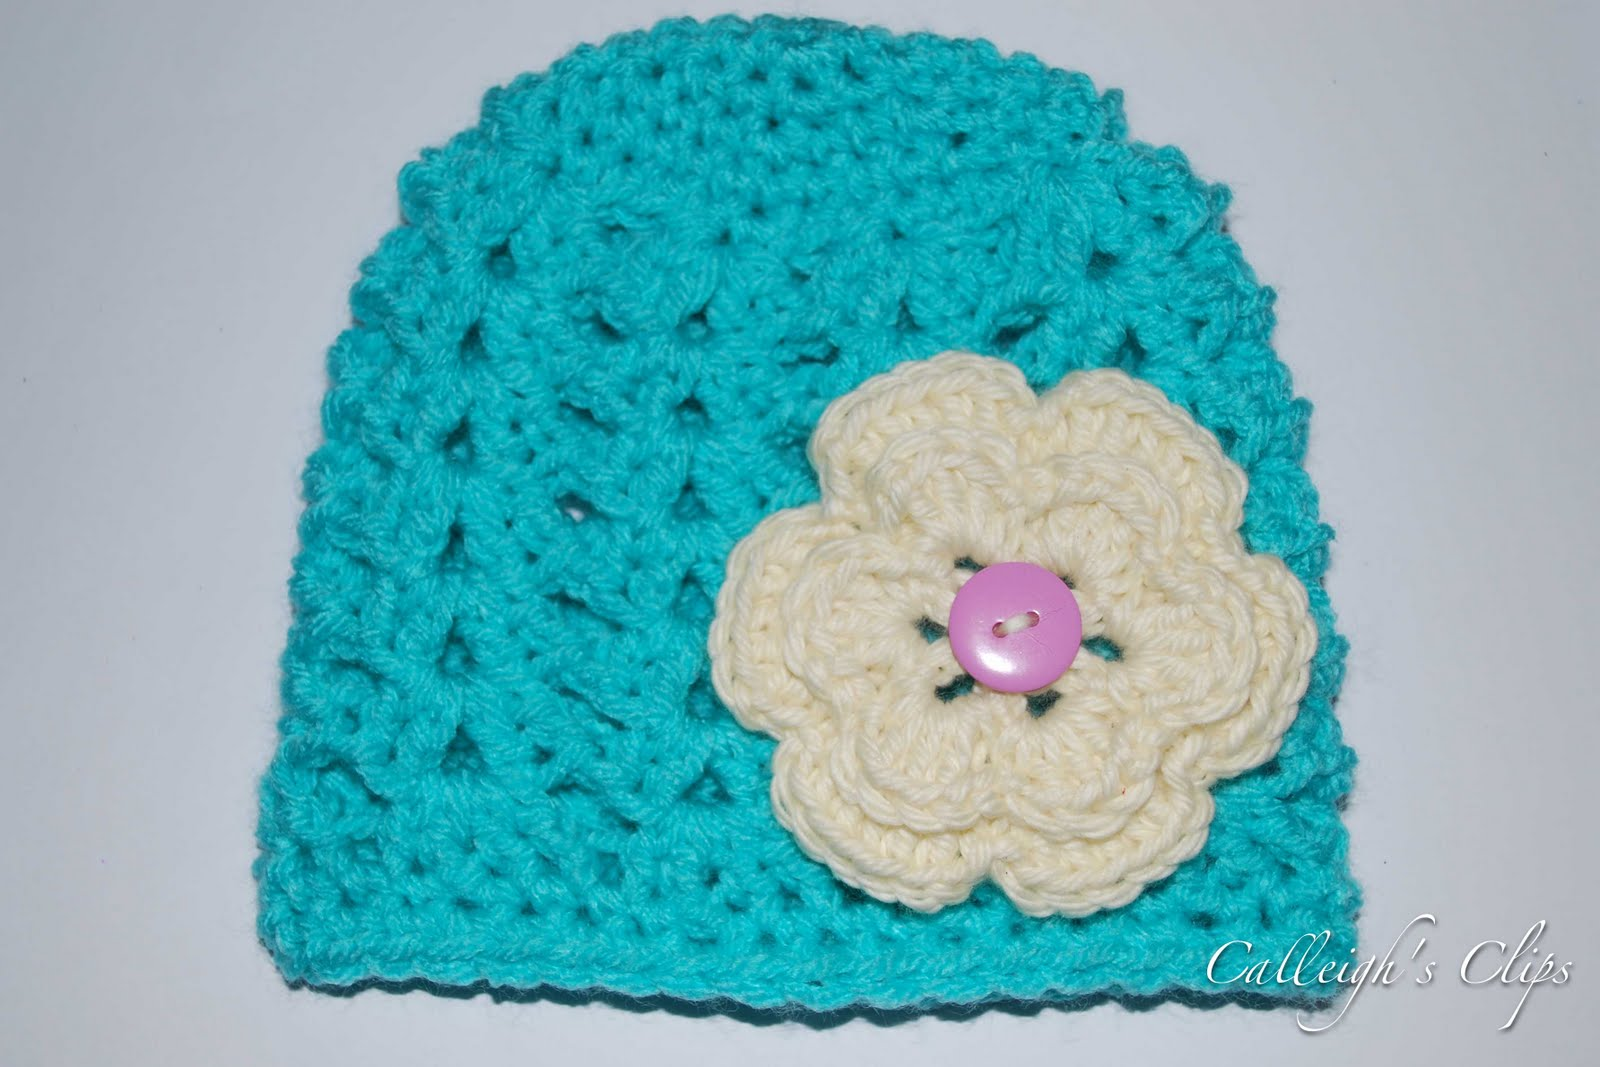 Crochet Stitches For Beanies : Calleighs Clips & Crochet Creations: Shell Stitch Beanie